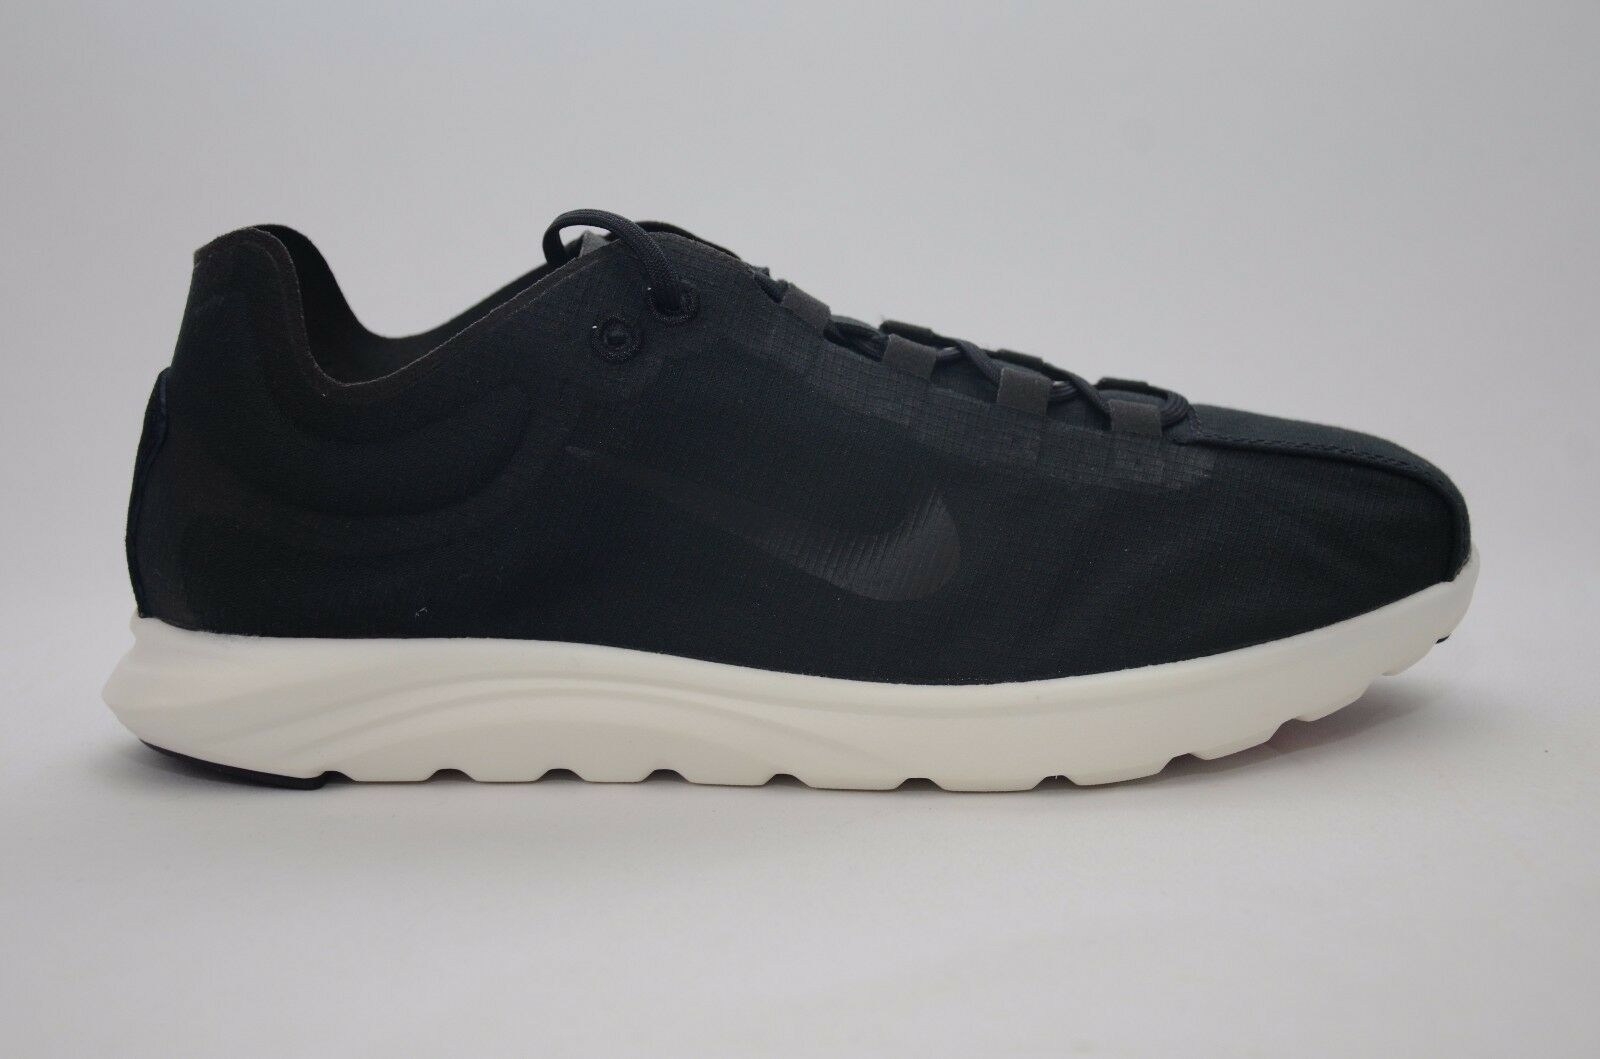 426f0e8491a NikeLab Mayfly Lite Black Men s Size 5-7 New in Box Box Box 909555 ...